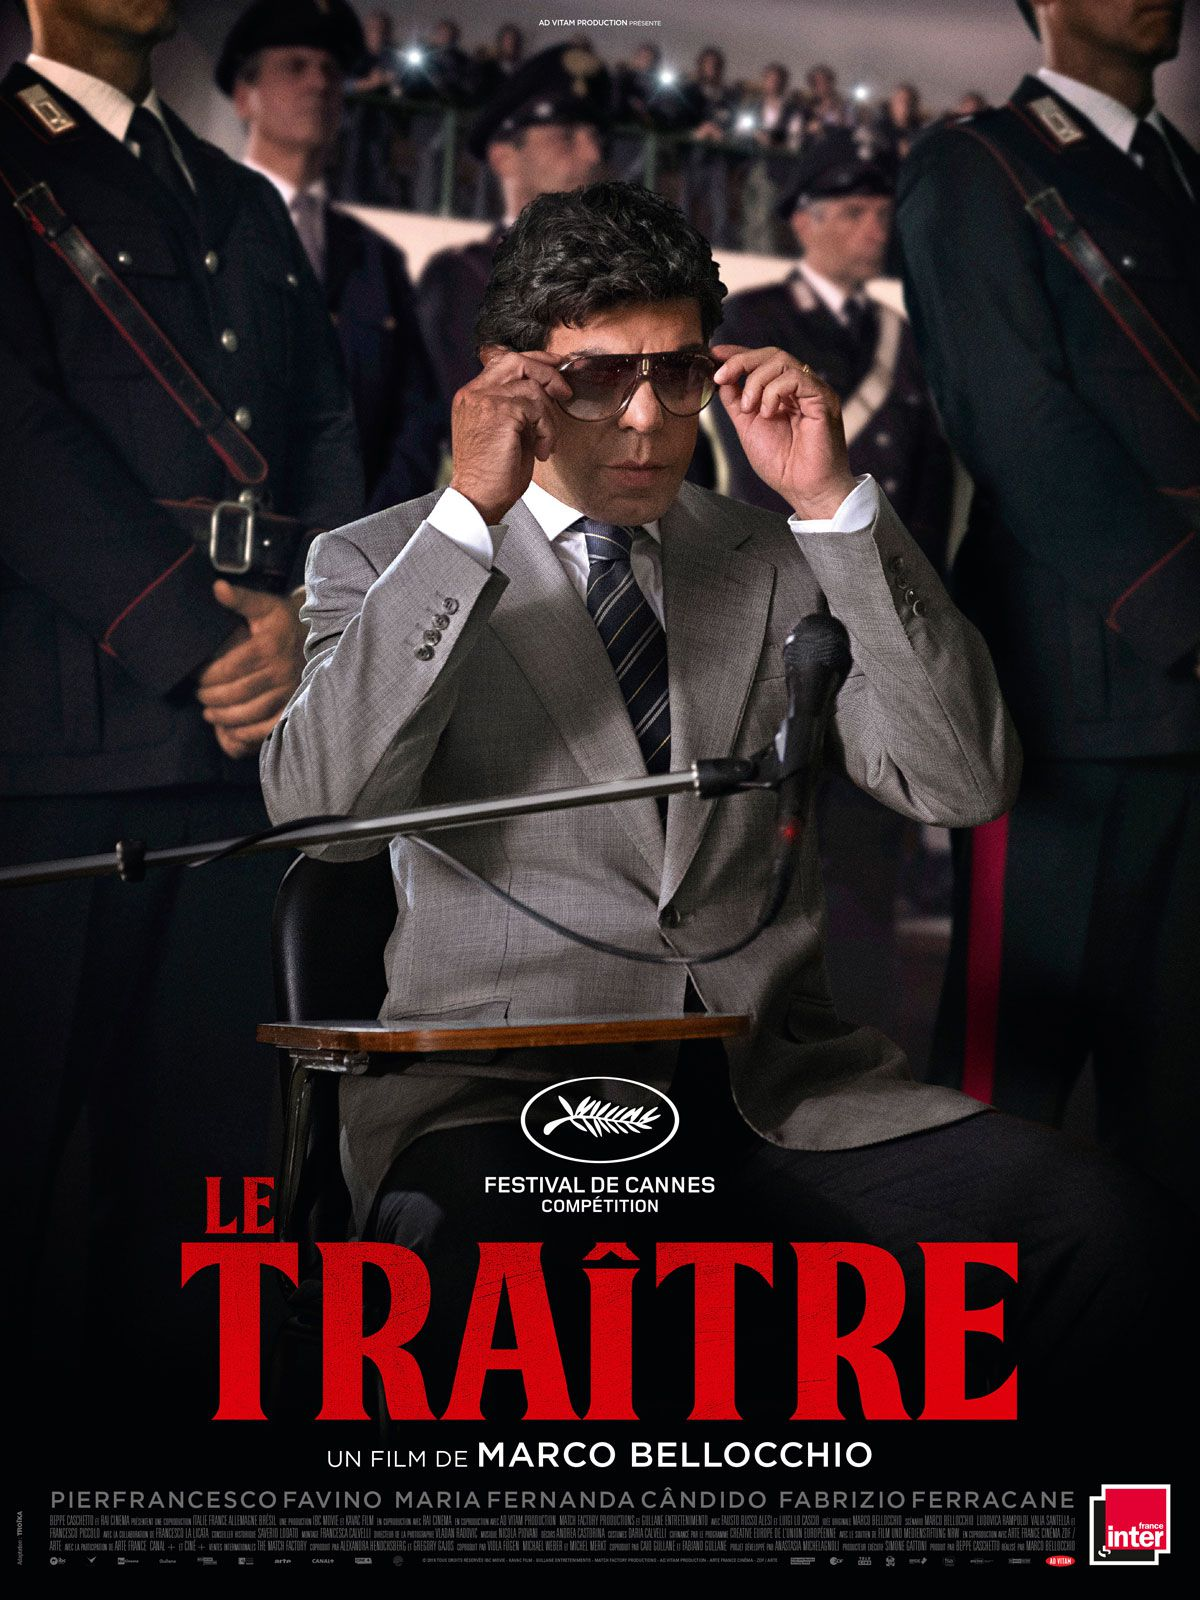 Le Traître - Film (2019) streaming VF gratuit complet